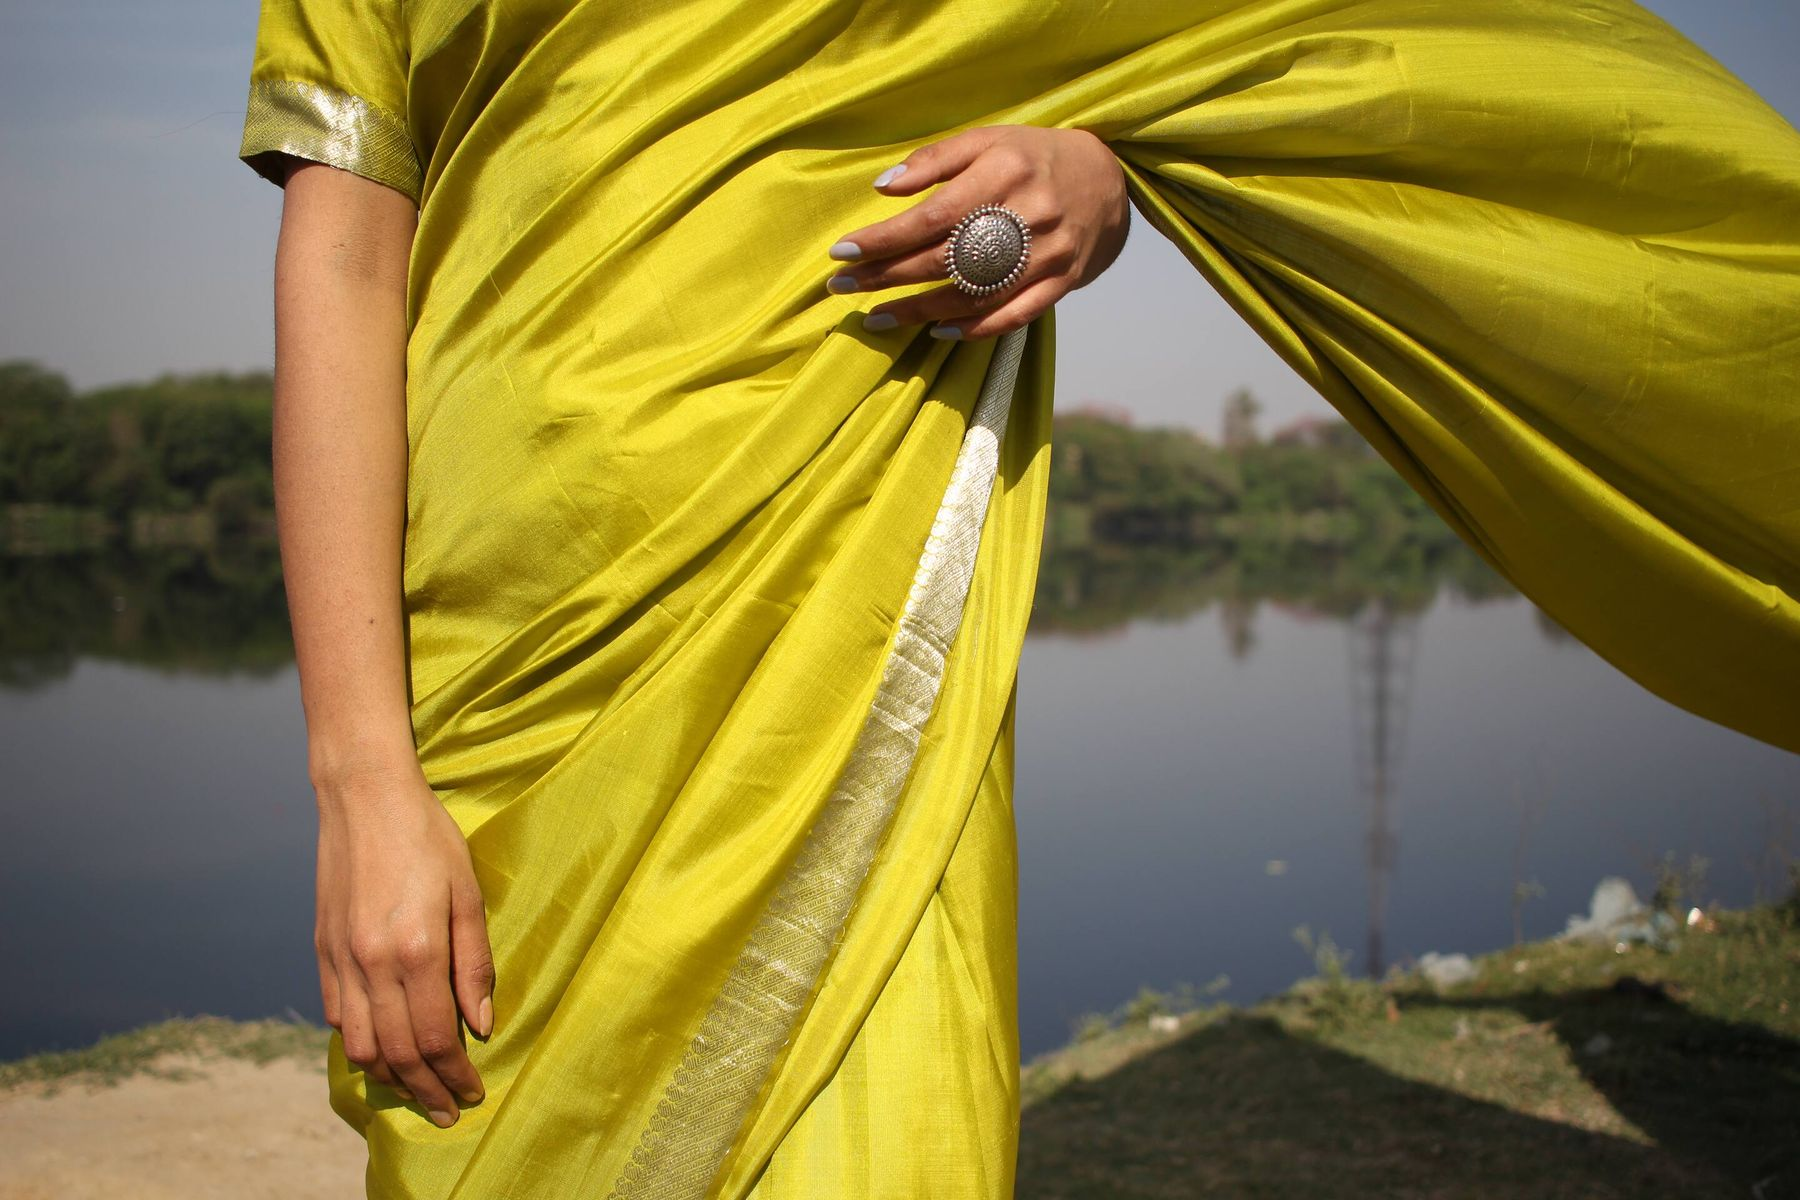 How to Remove Curry Stains from Saree | Cleanipedia